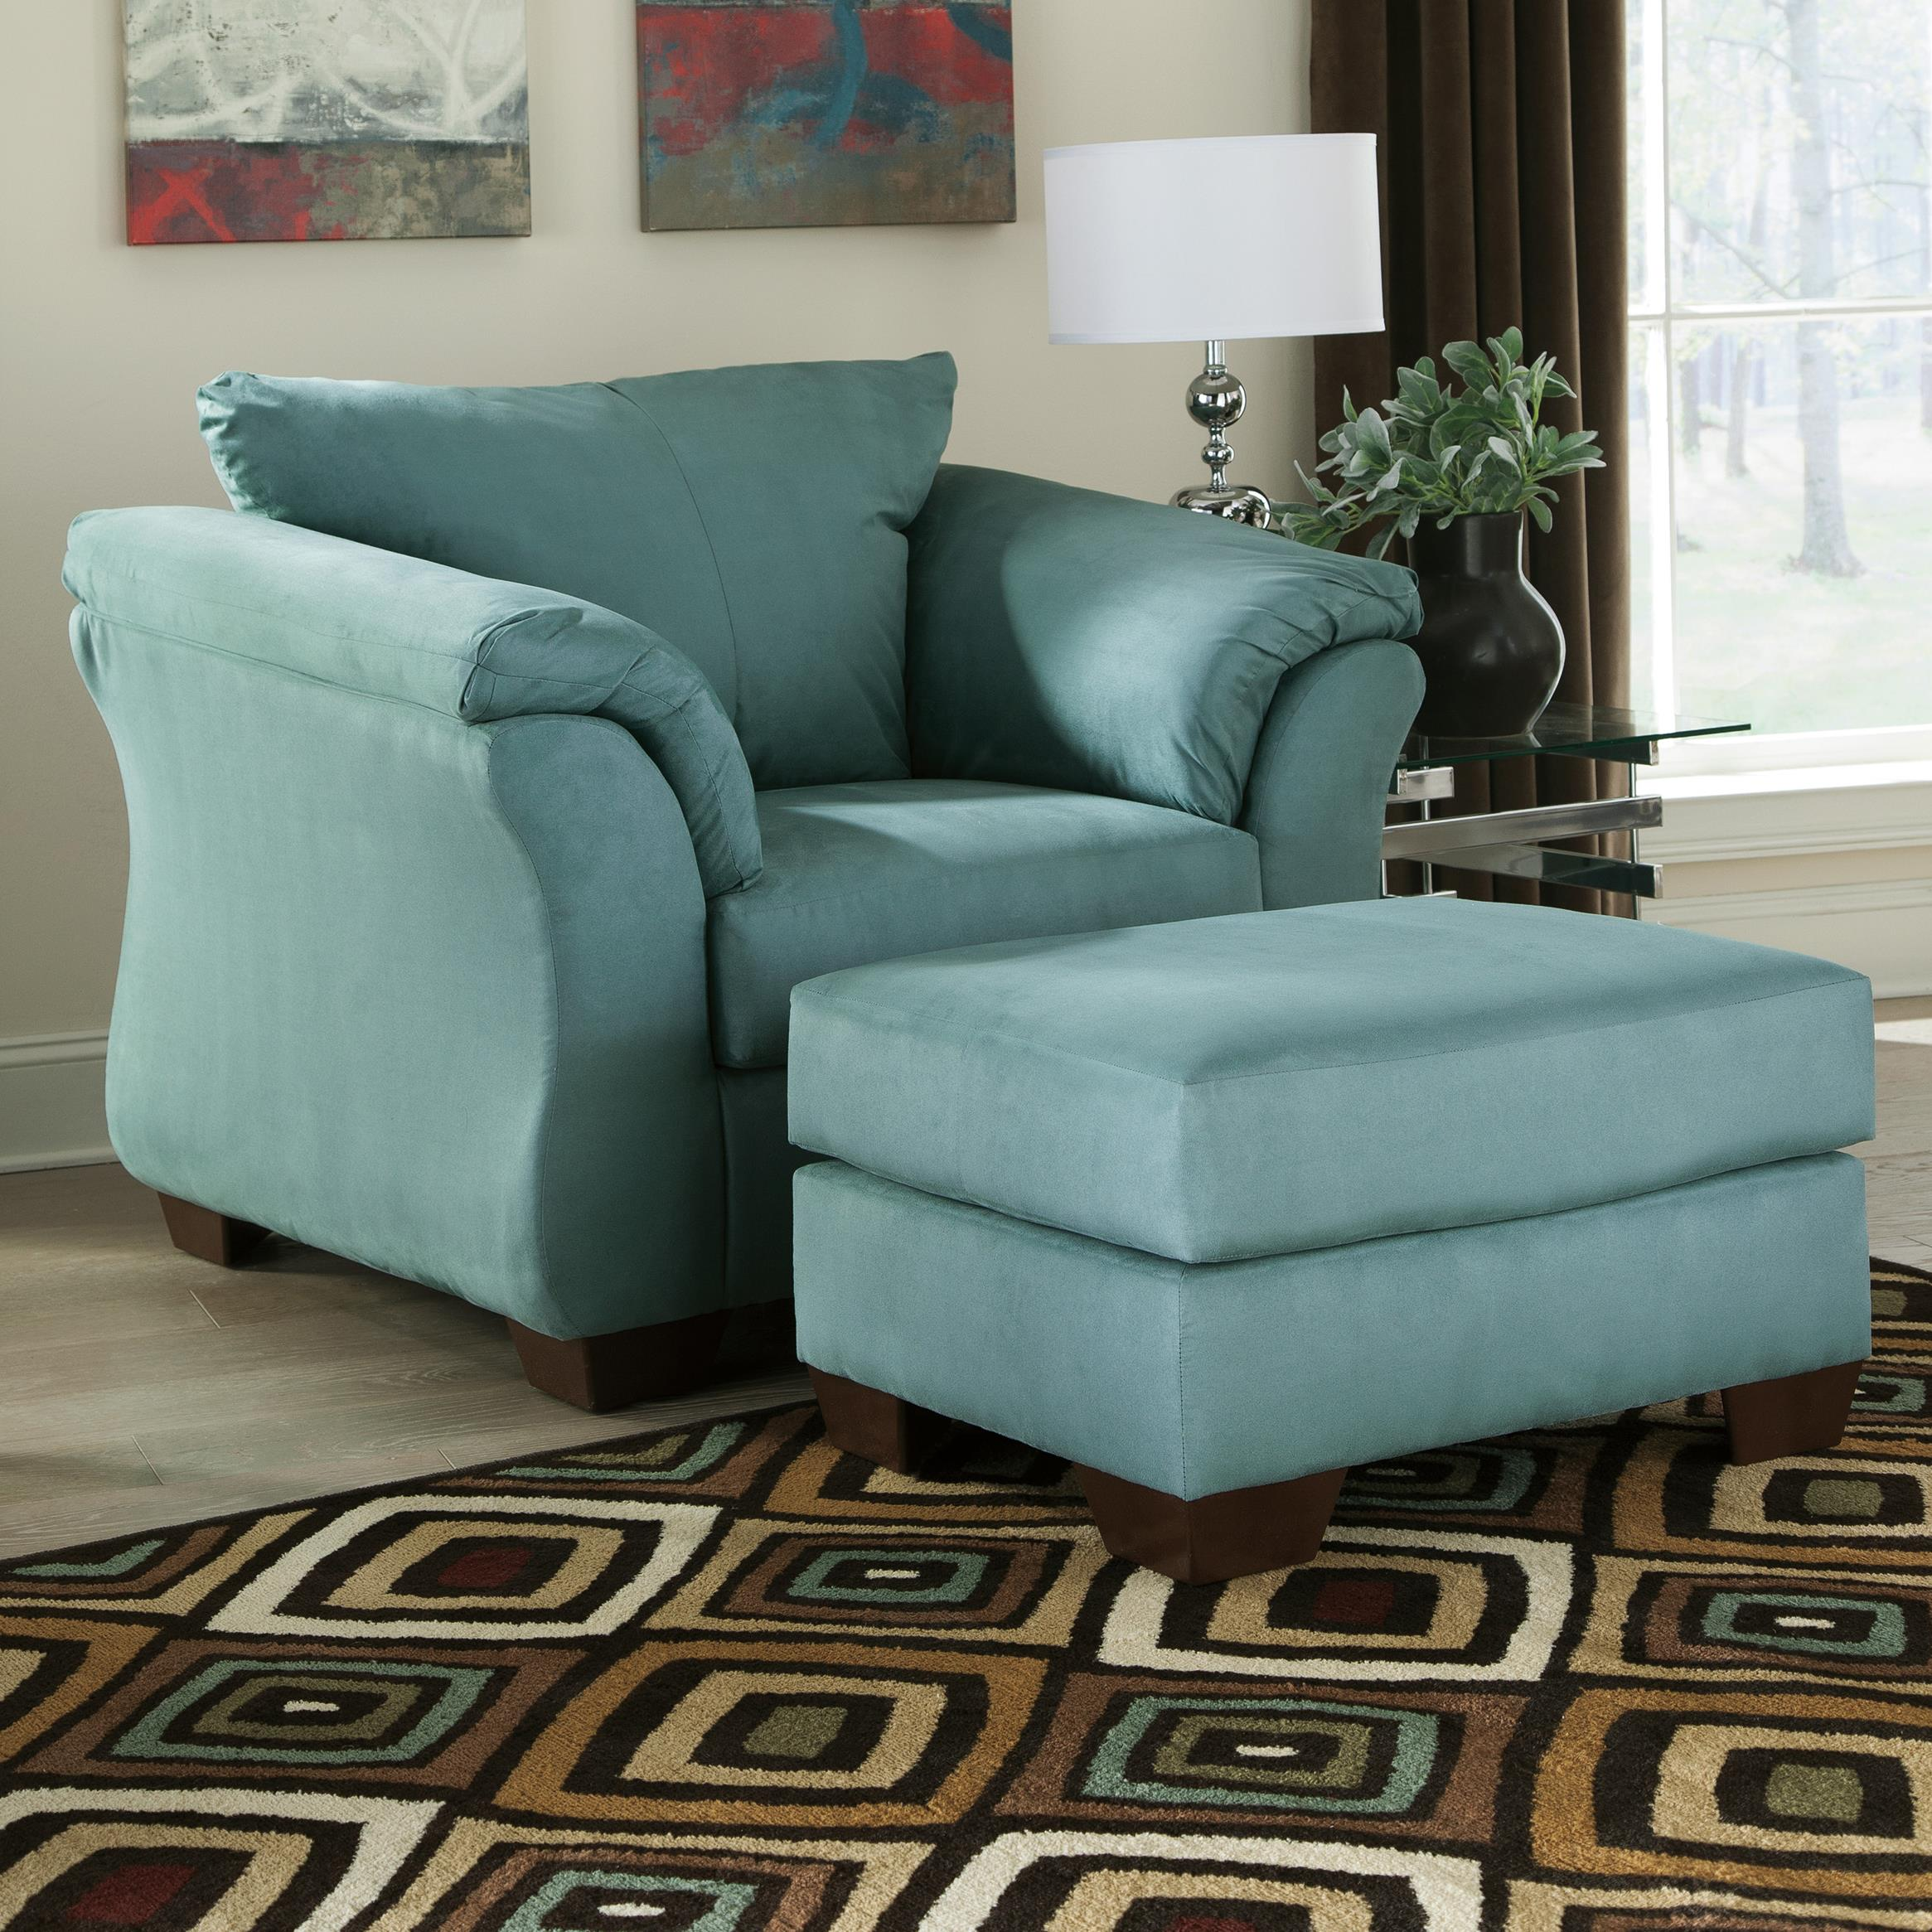 Signature Design By Ashley Darcy Sky Contemporary Upholstered Chair And Ottoman With Tapered Legs Wayside Furniture Chair Ottoman Sets